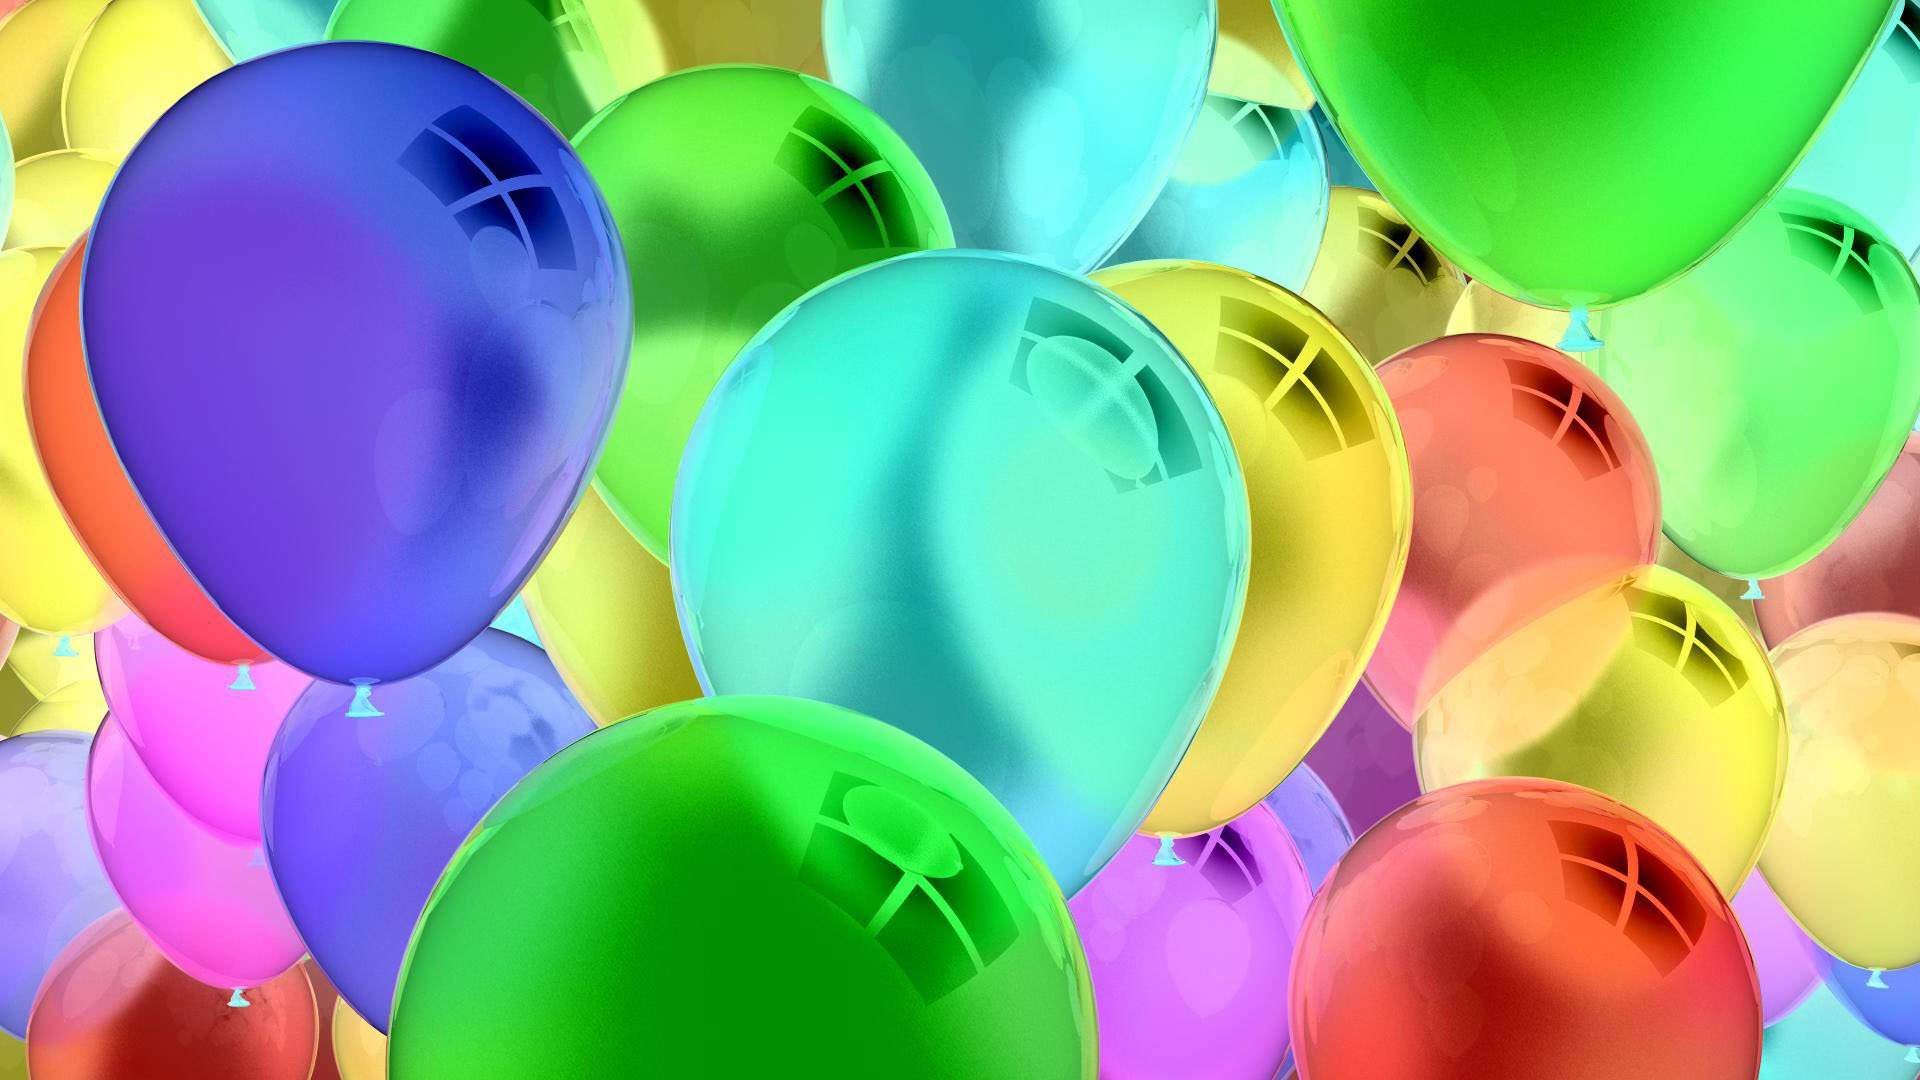 Birthday Balloons Colorful Wallpapers for Daily Backgrounds 1920x1080